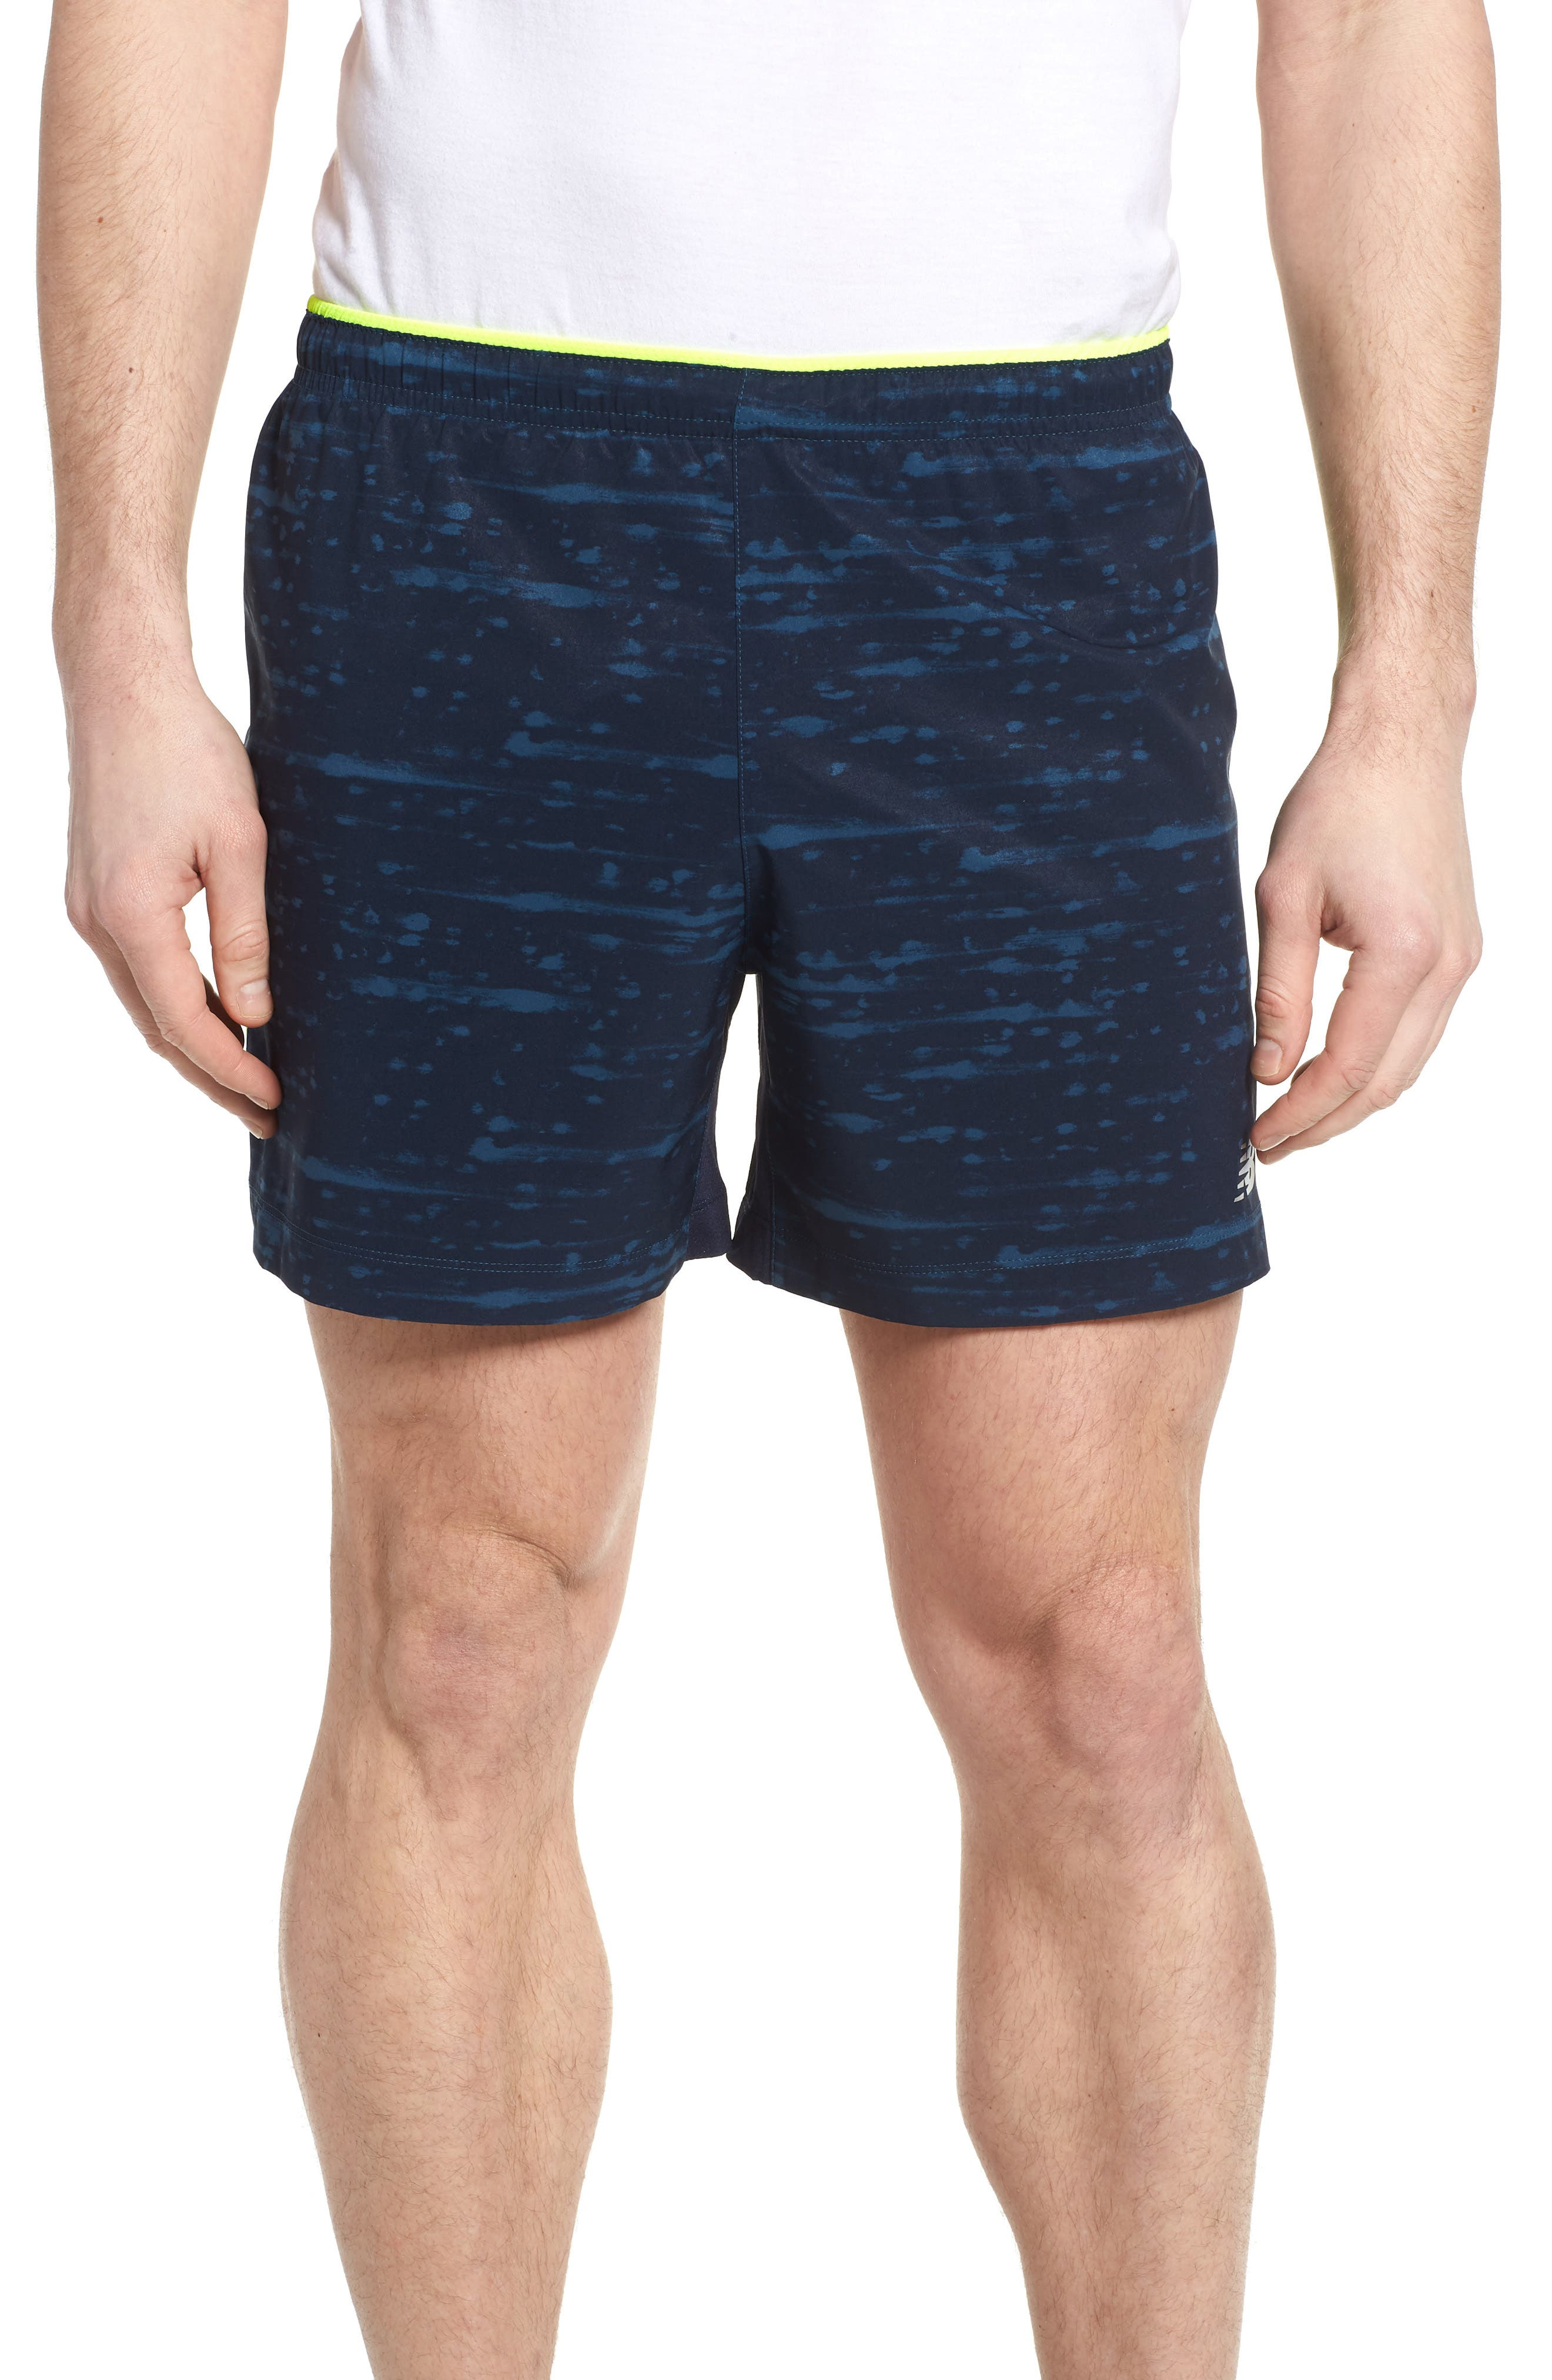 Impact Shorts,                         Main,                         color, North Sea